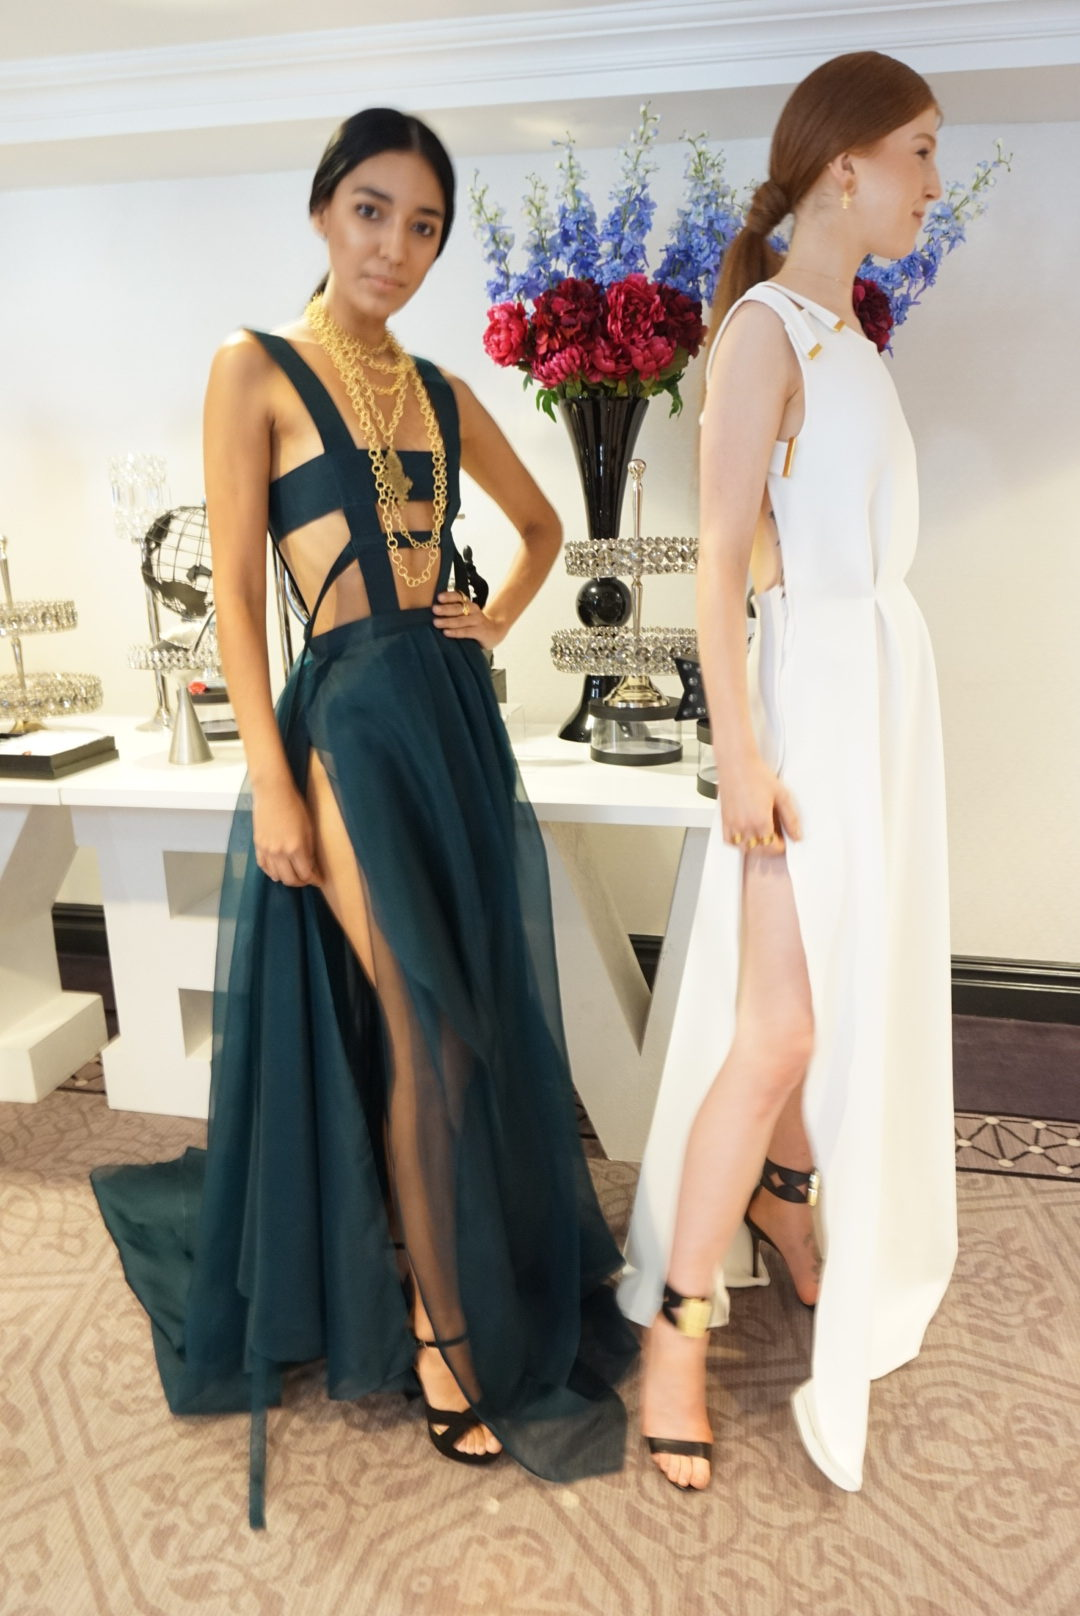 cre8tive-lee-designs-nyfw-models